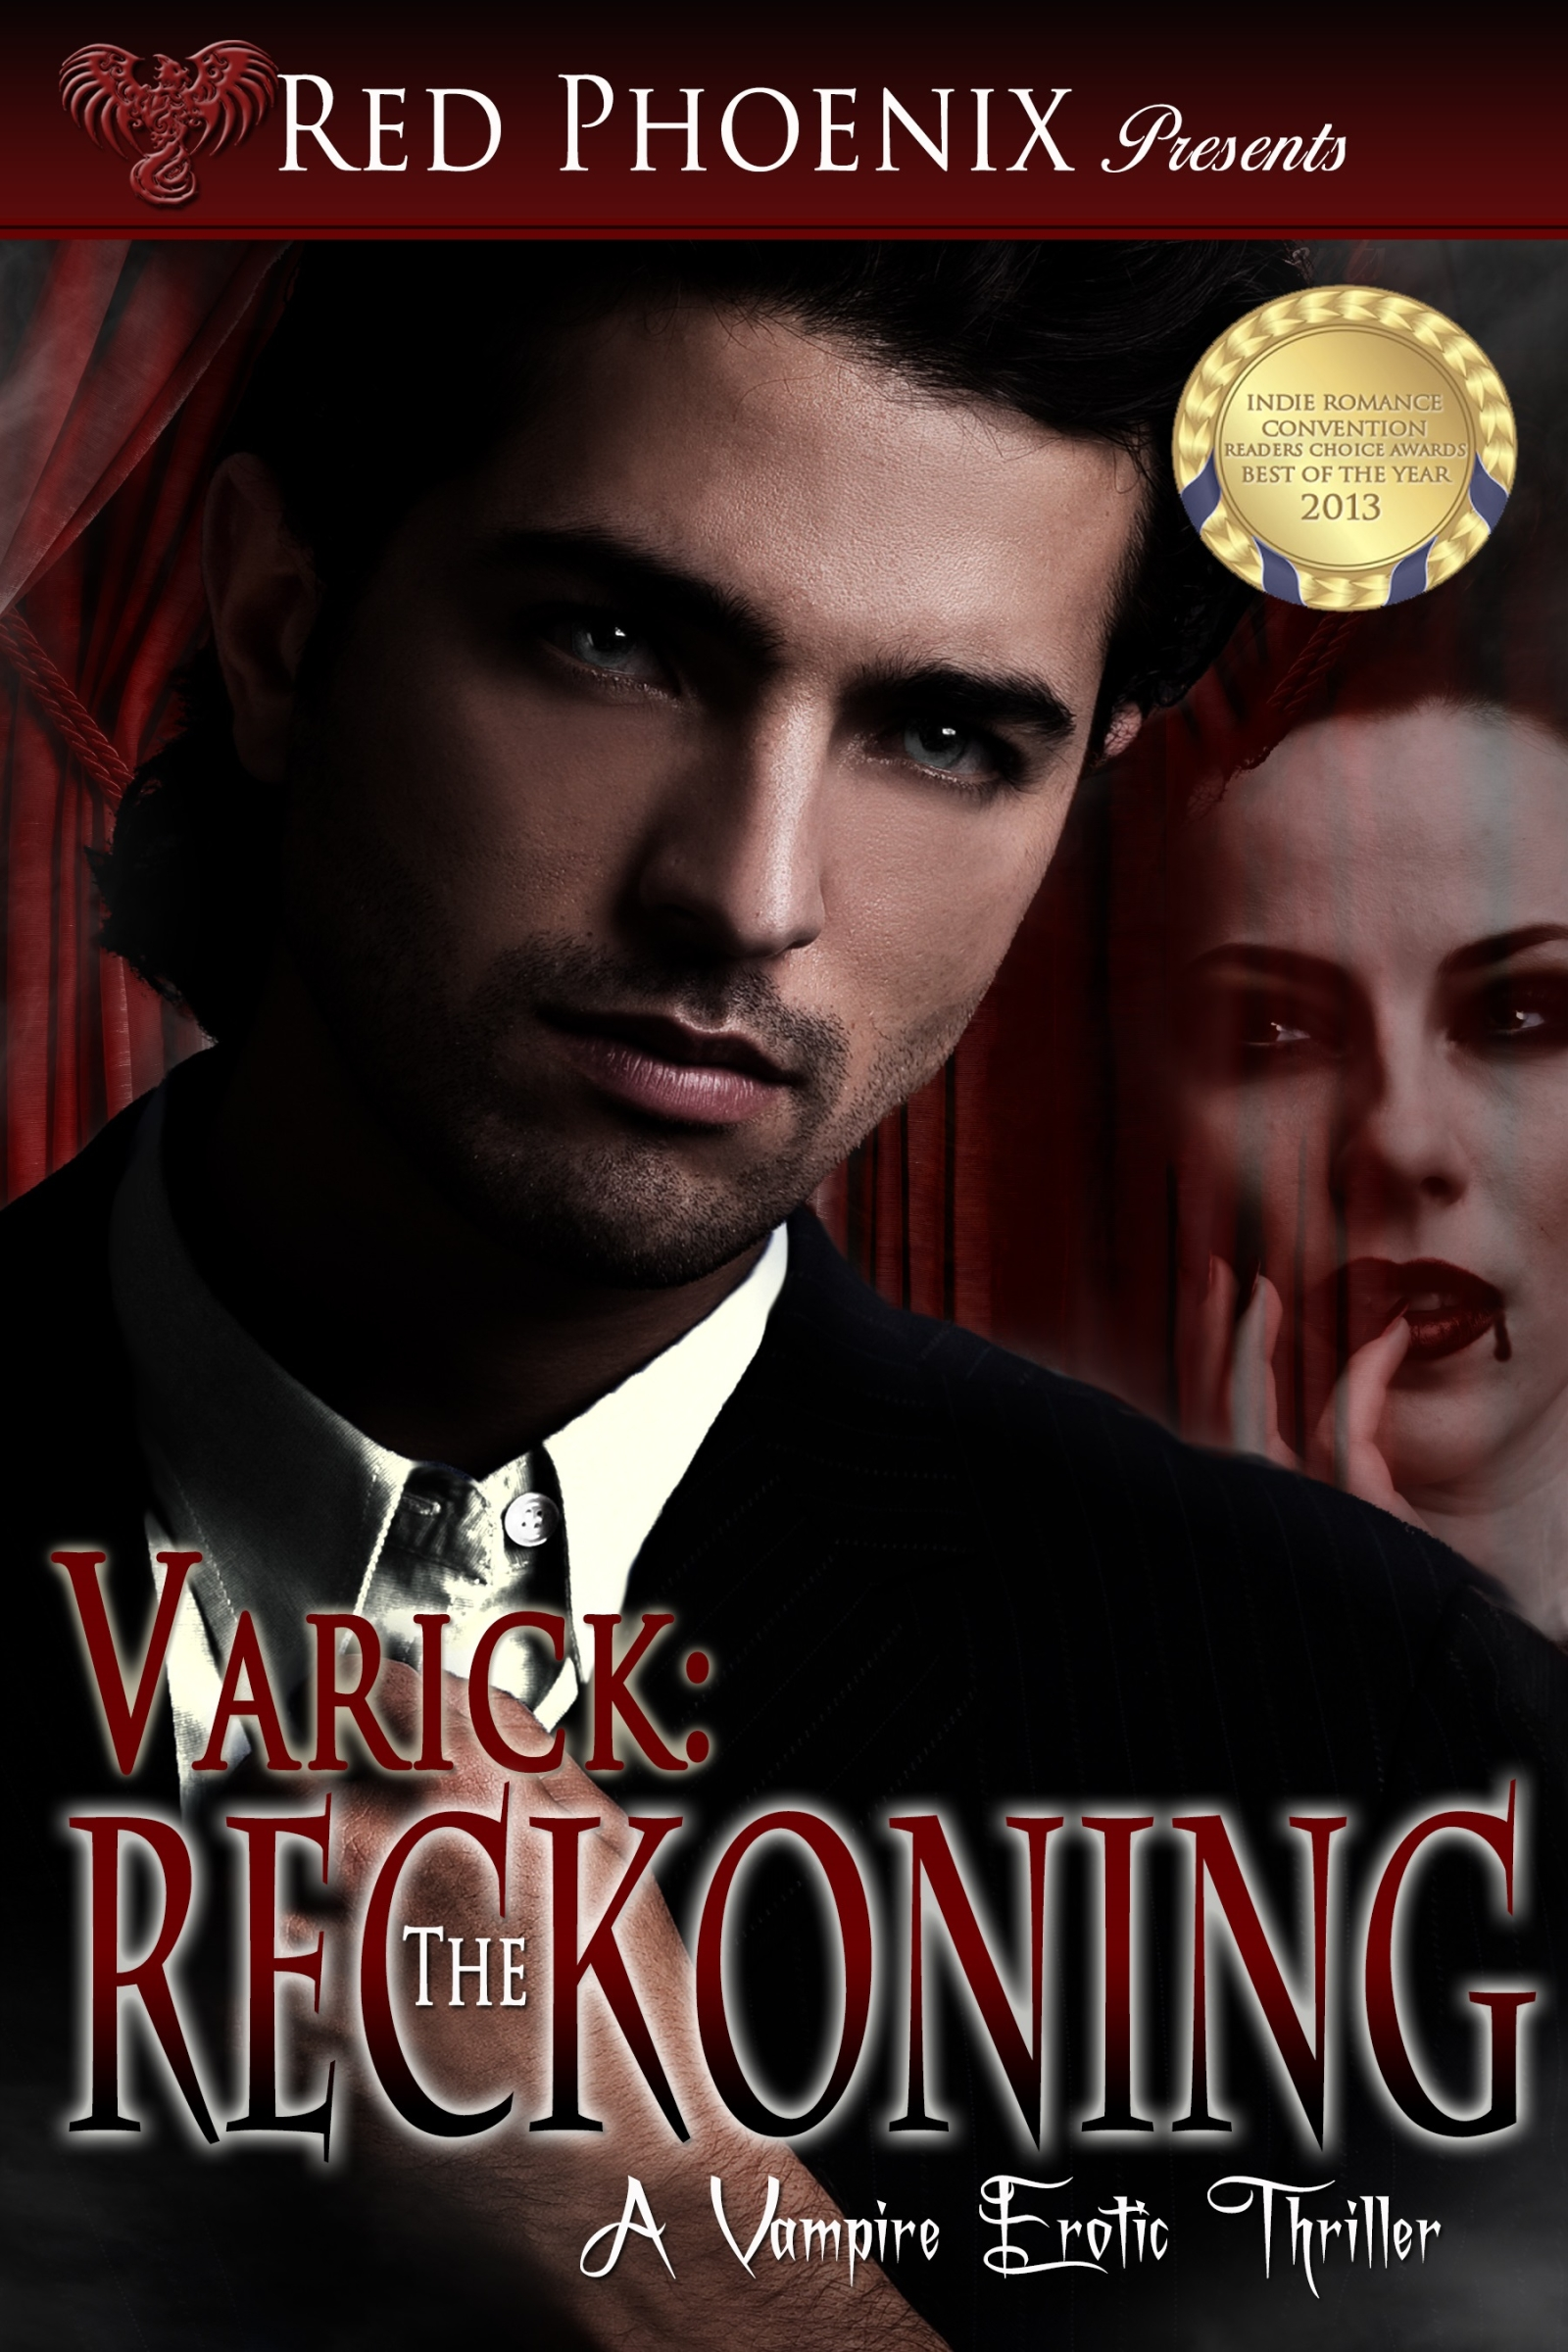 Varick: The Reckoning